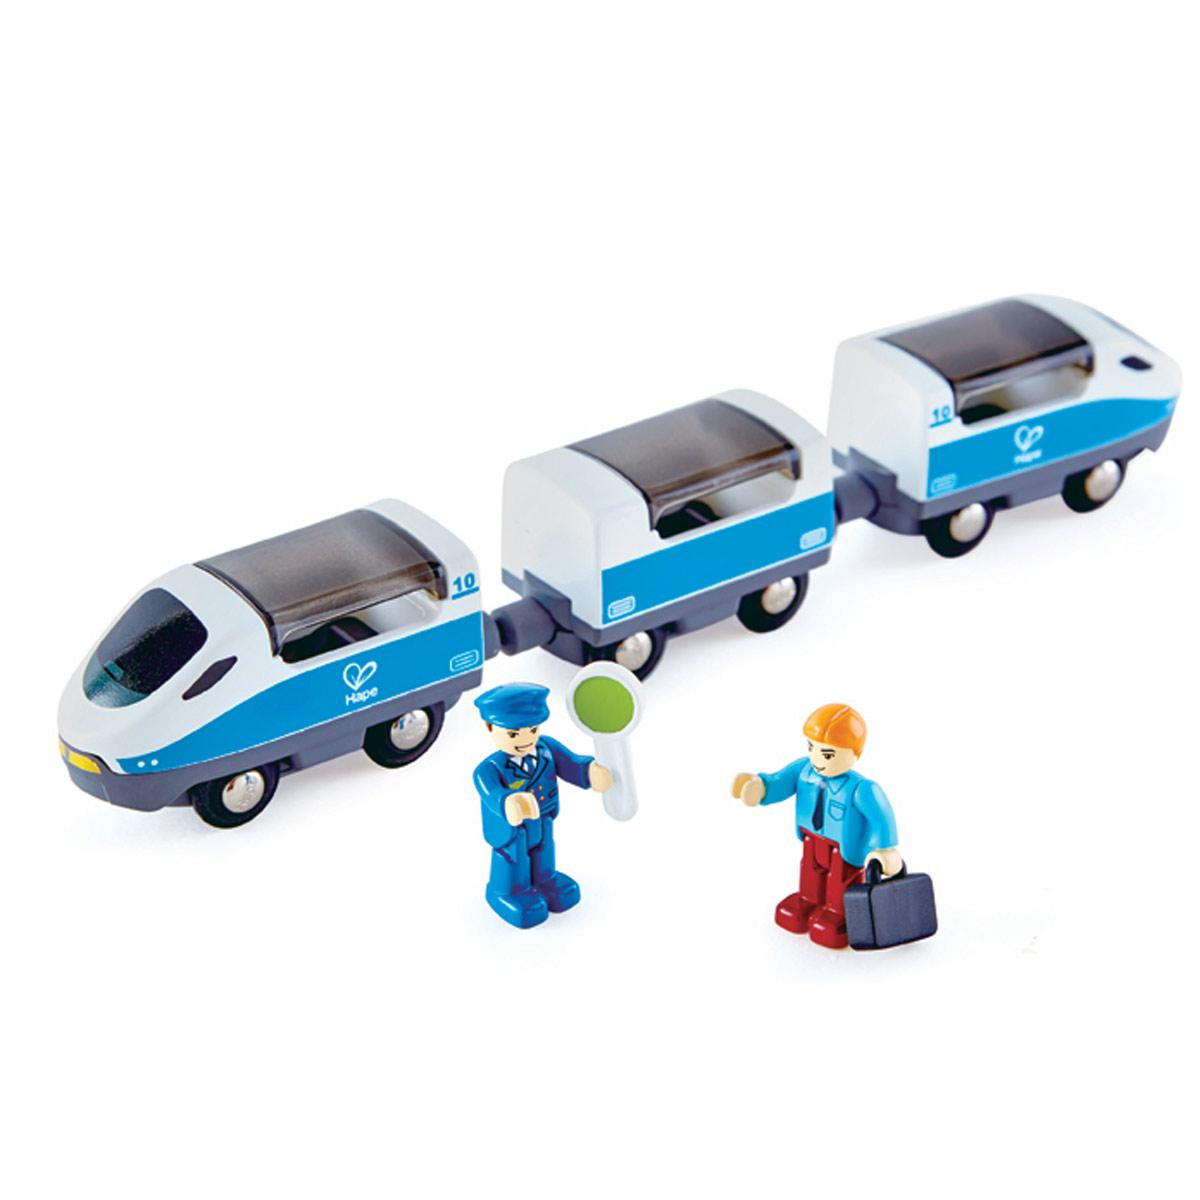 Accessoires circuit de train INTERCITY TRAIN Hape